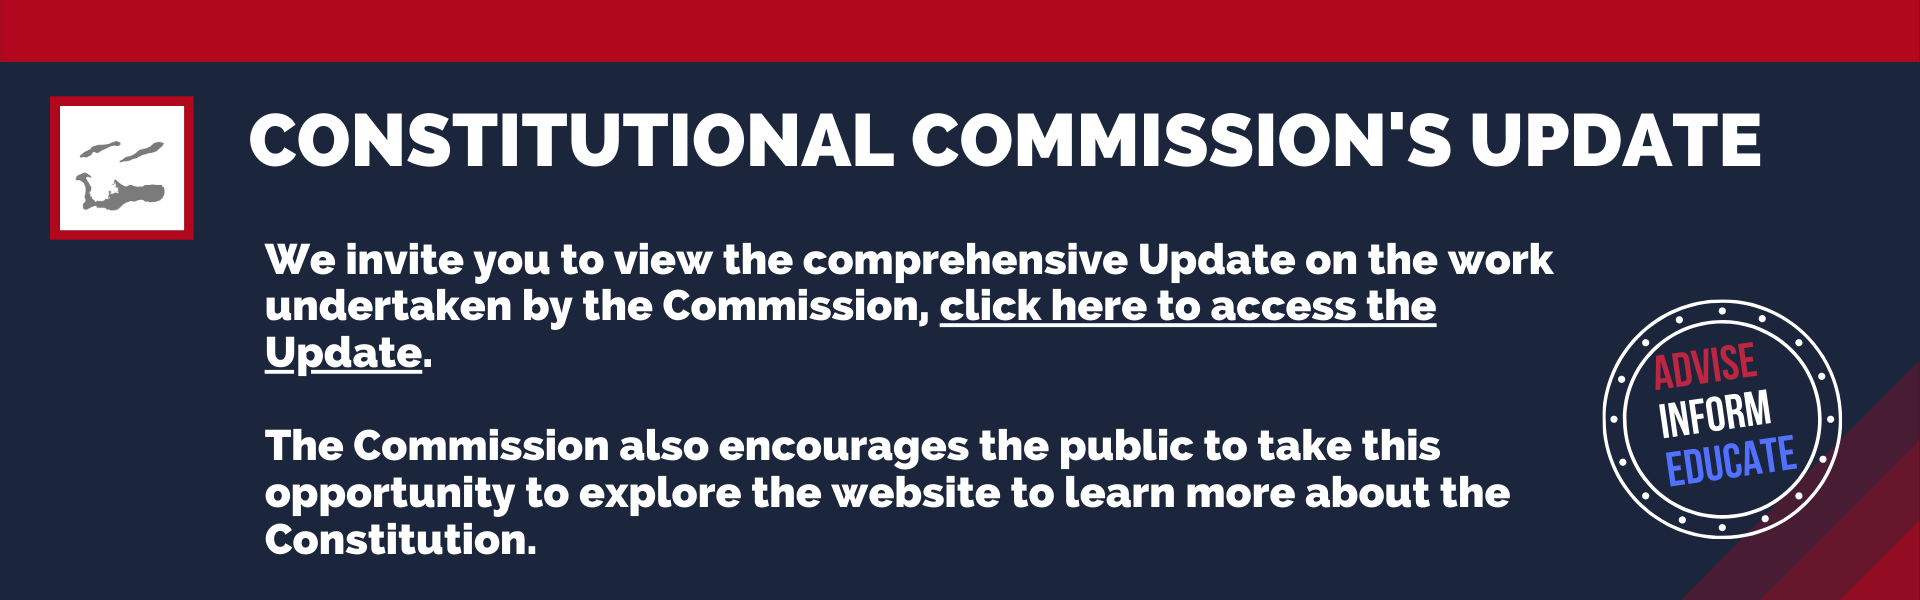 Constitutional Commission's Update